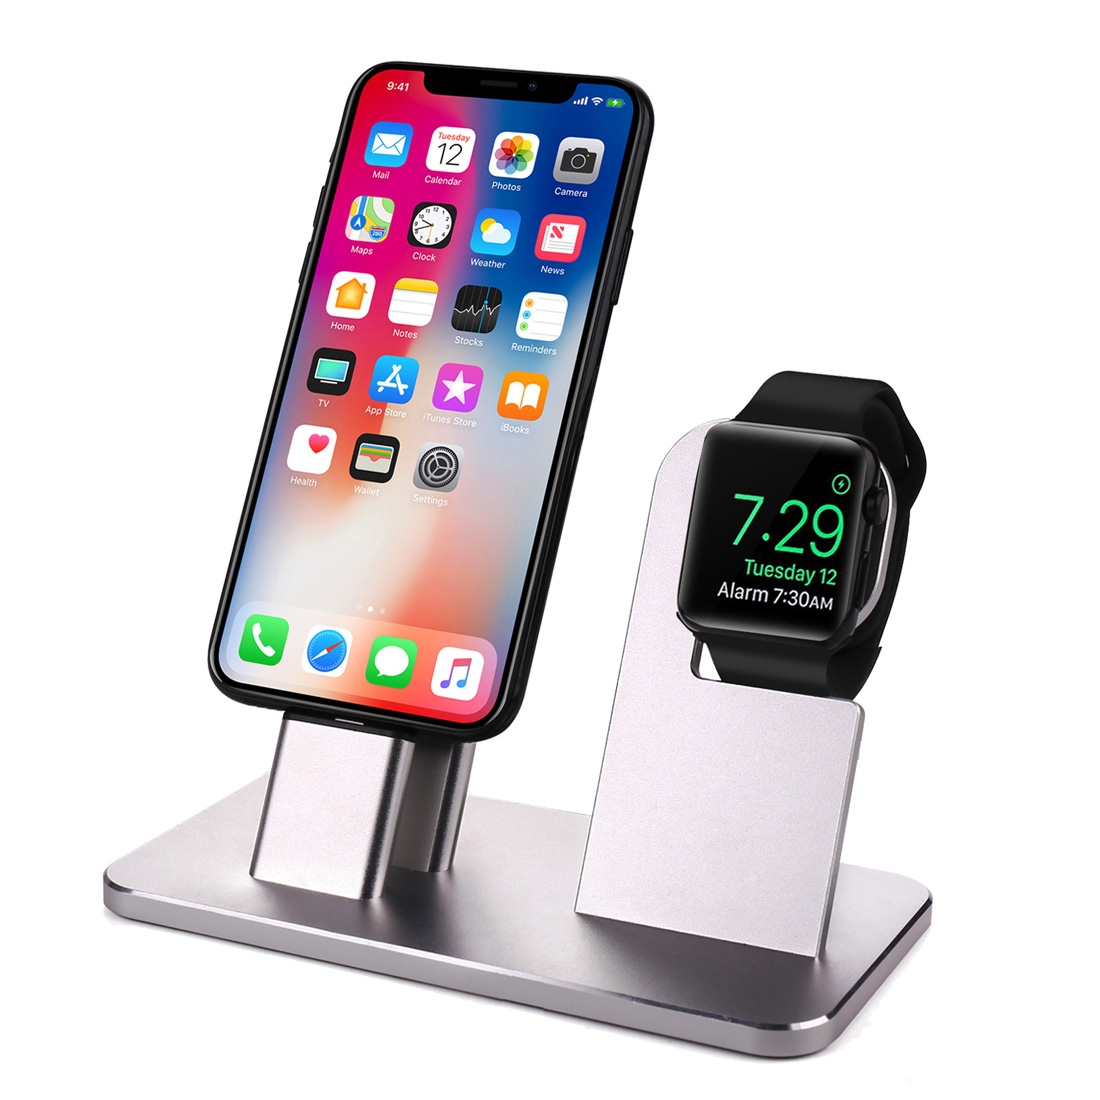 2 In 1 Aluminum Alloy Charging Dock Stand Holder Station. For Apple Watch Series 3 / 2 / 1 / 42mm / 38mm. iPhone X / 8 / 8 Plus / 7 / 7 Plus / 6s ...